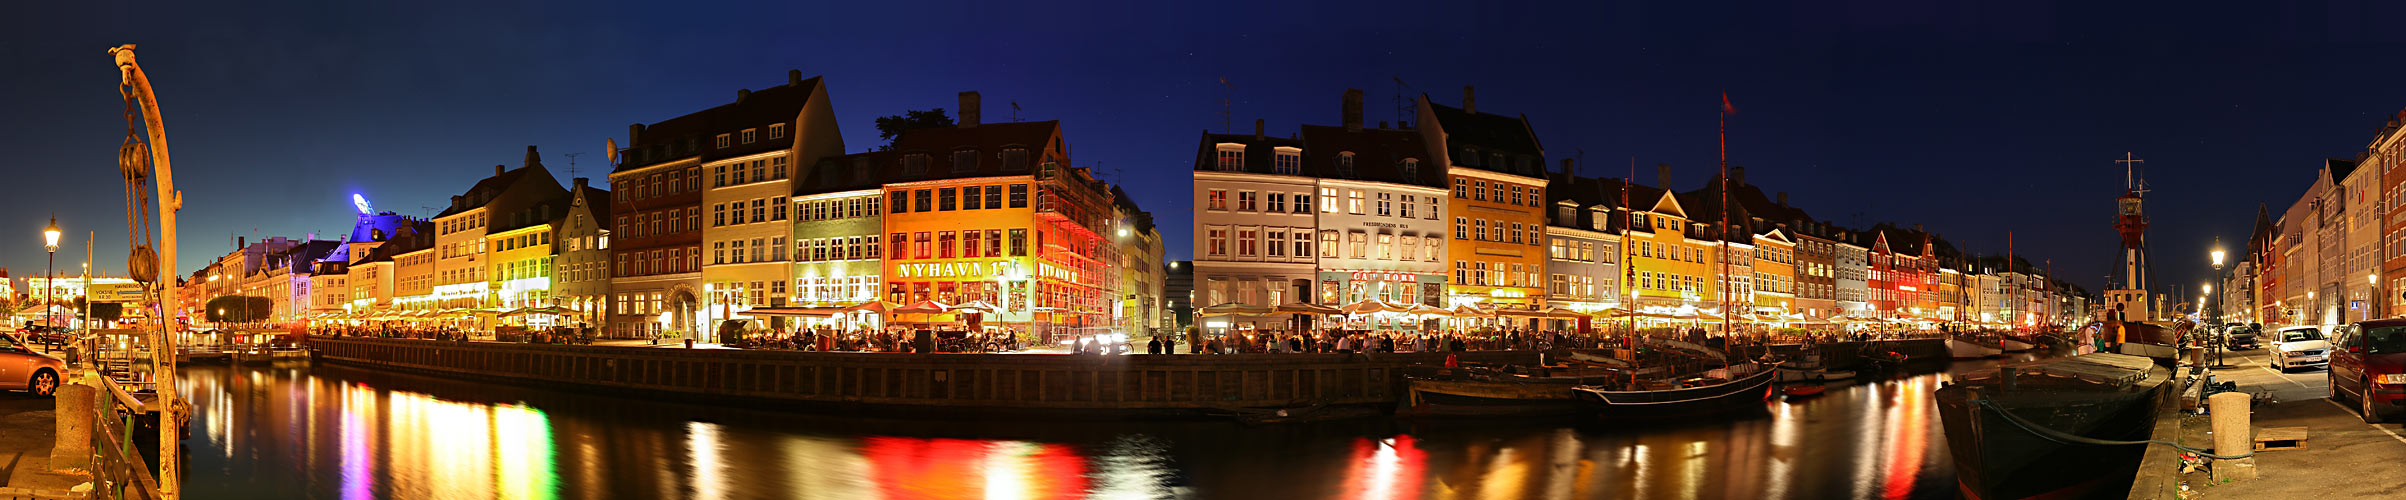 Nyhavn180° Panorama